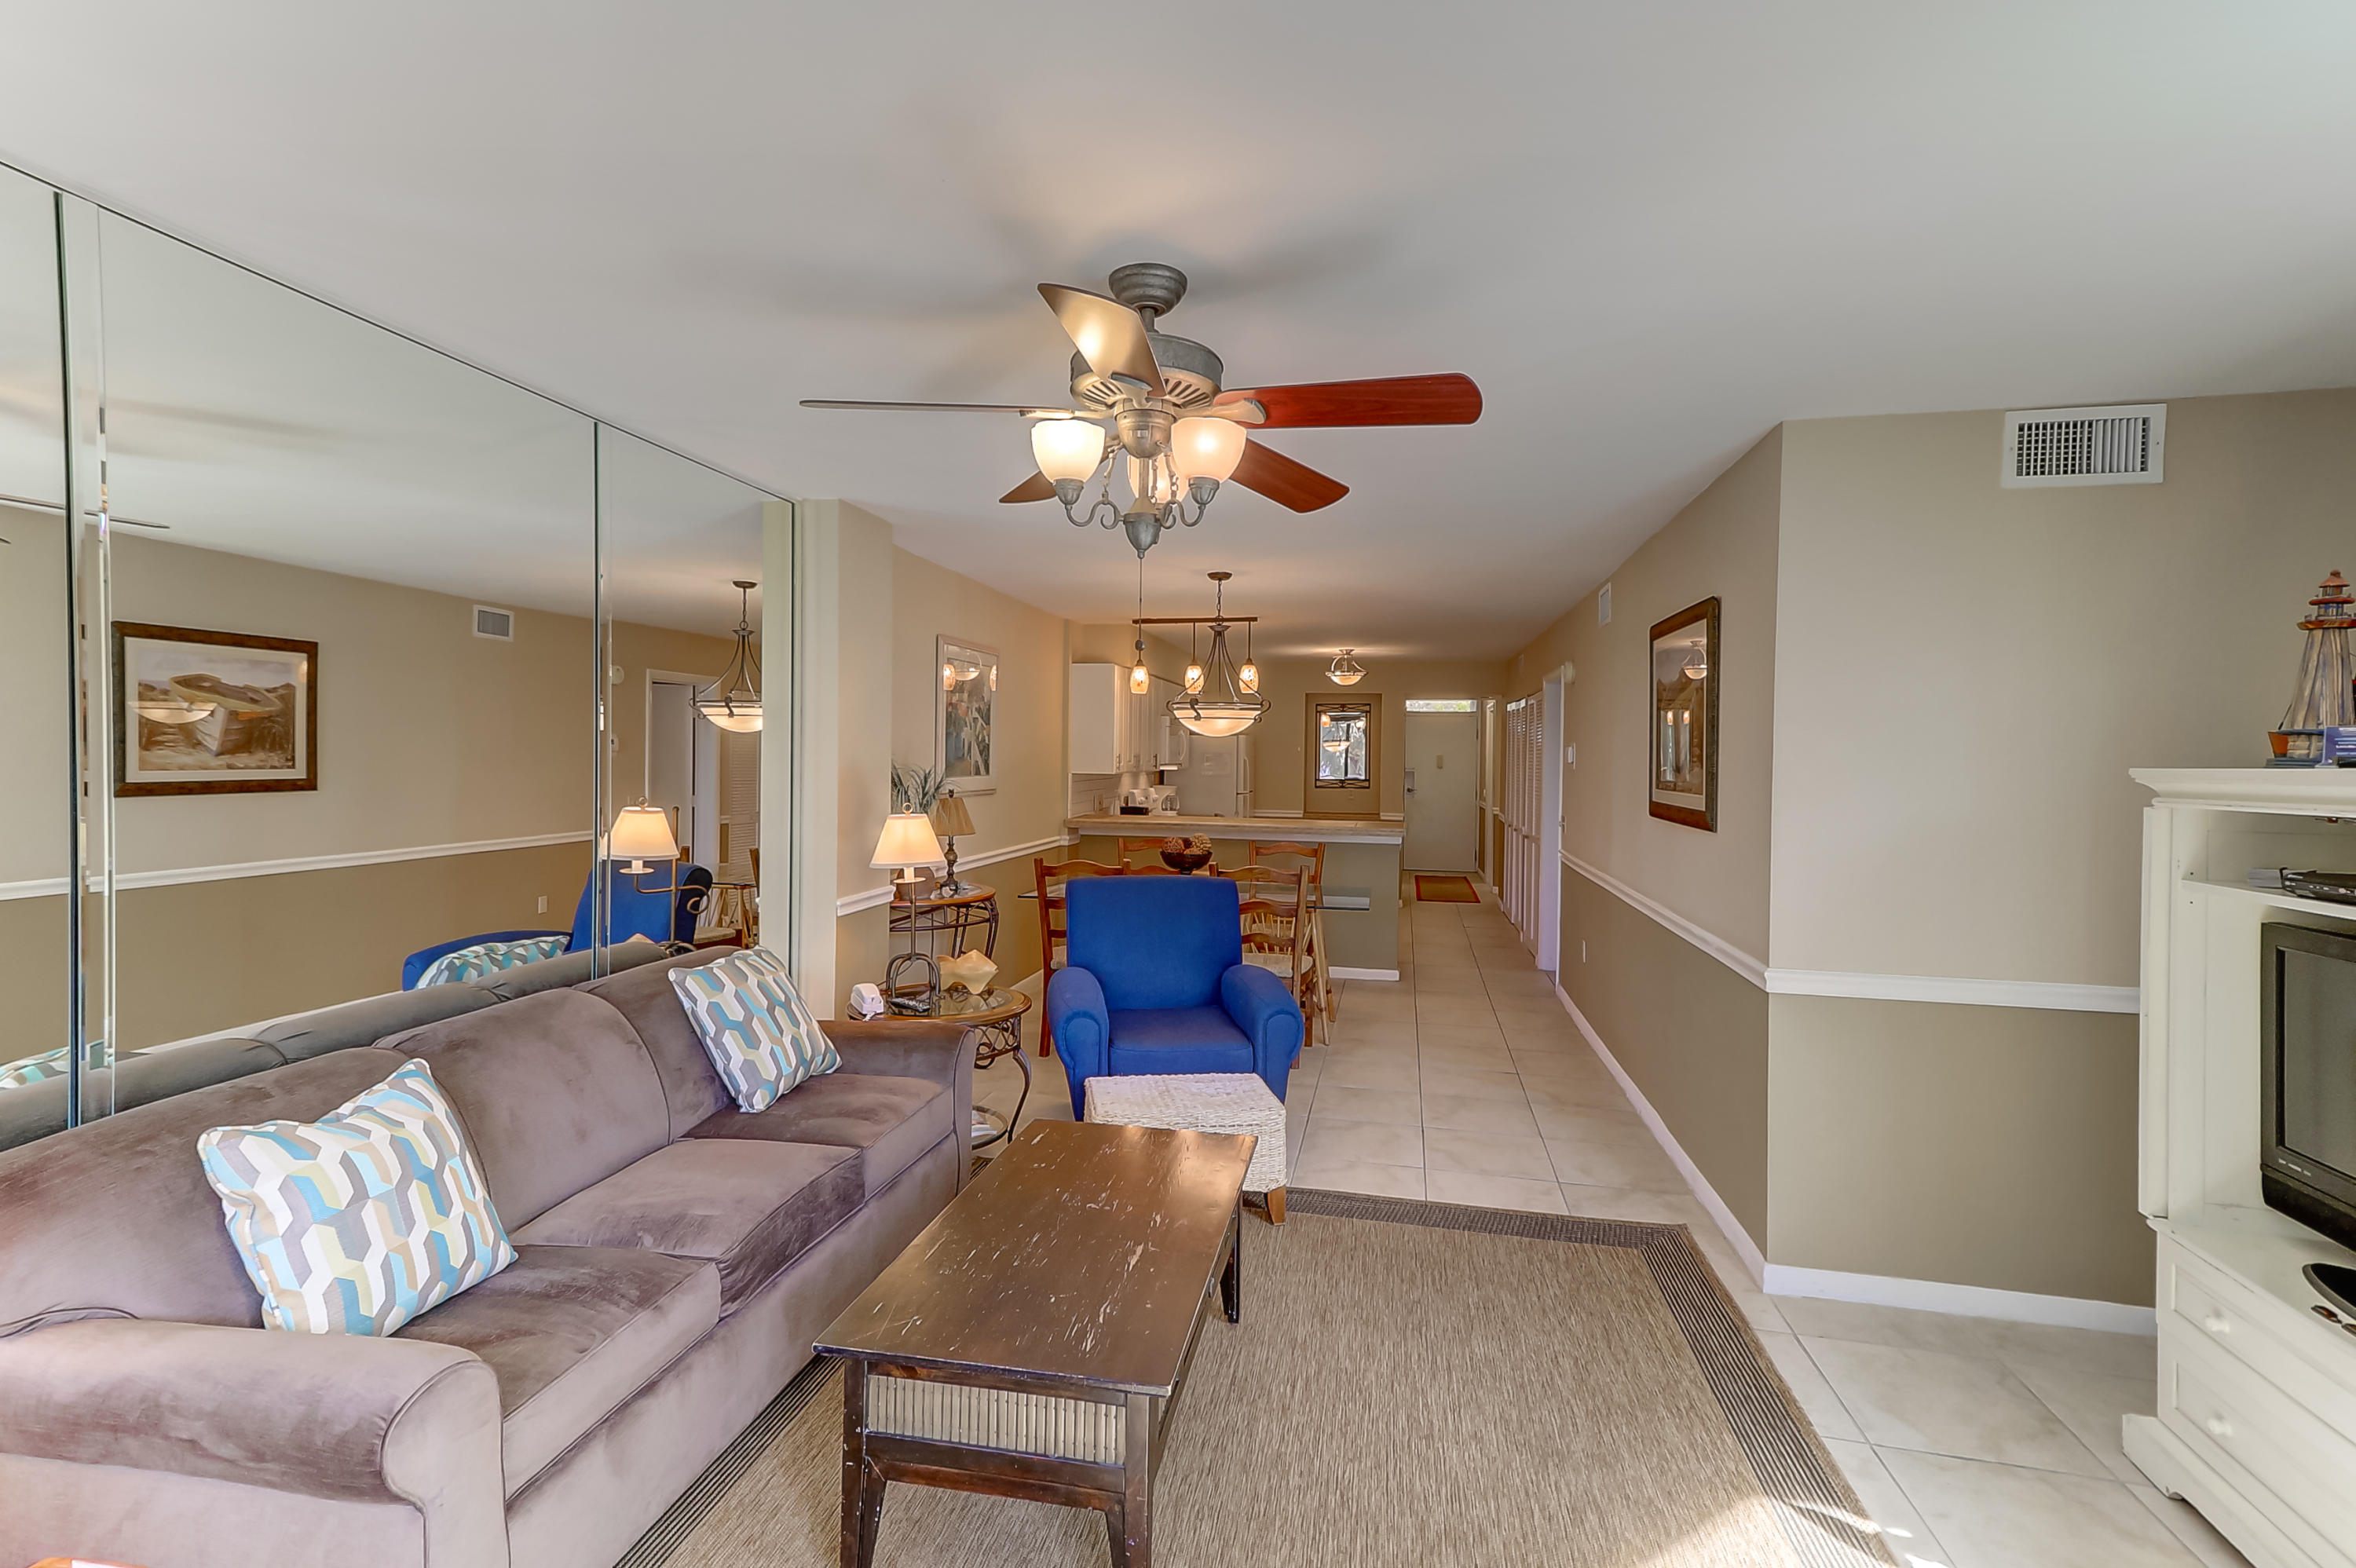 Wild Dunes Homes For Sale - 116-C Shipwatch, Isle of Palms, SC - 20